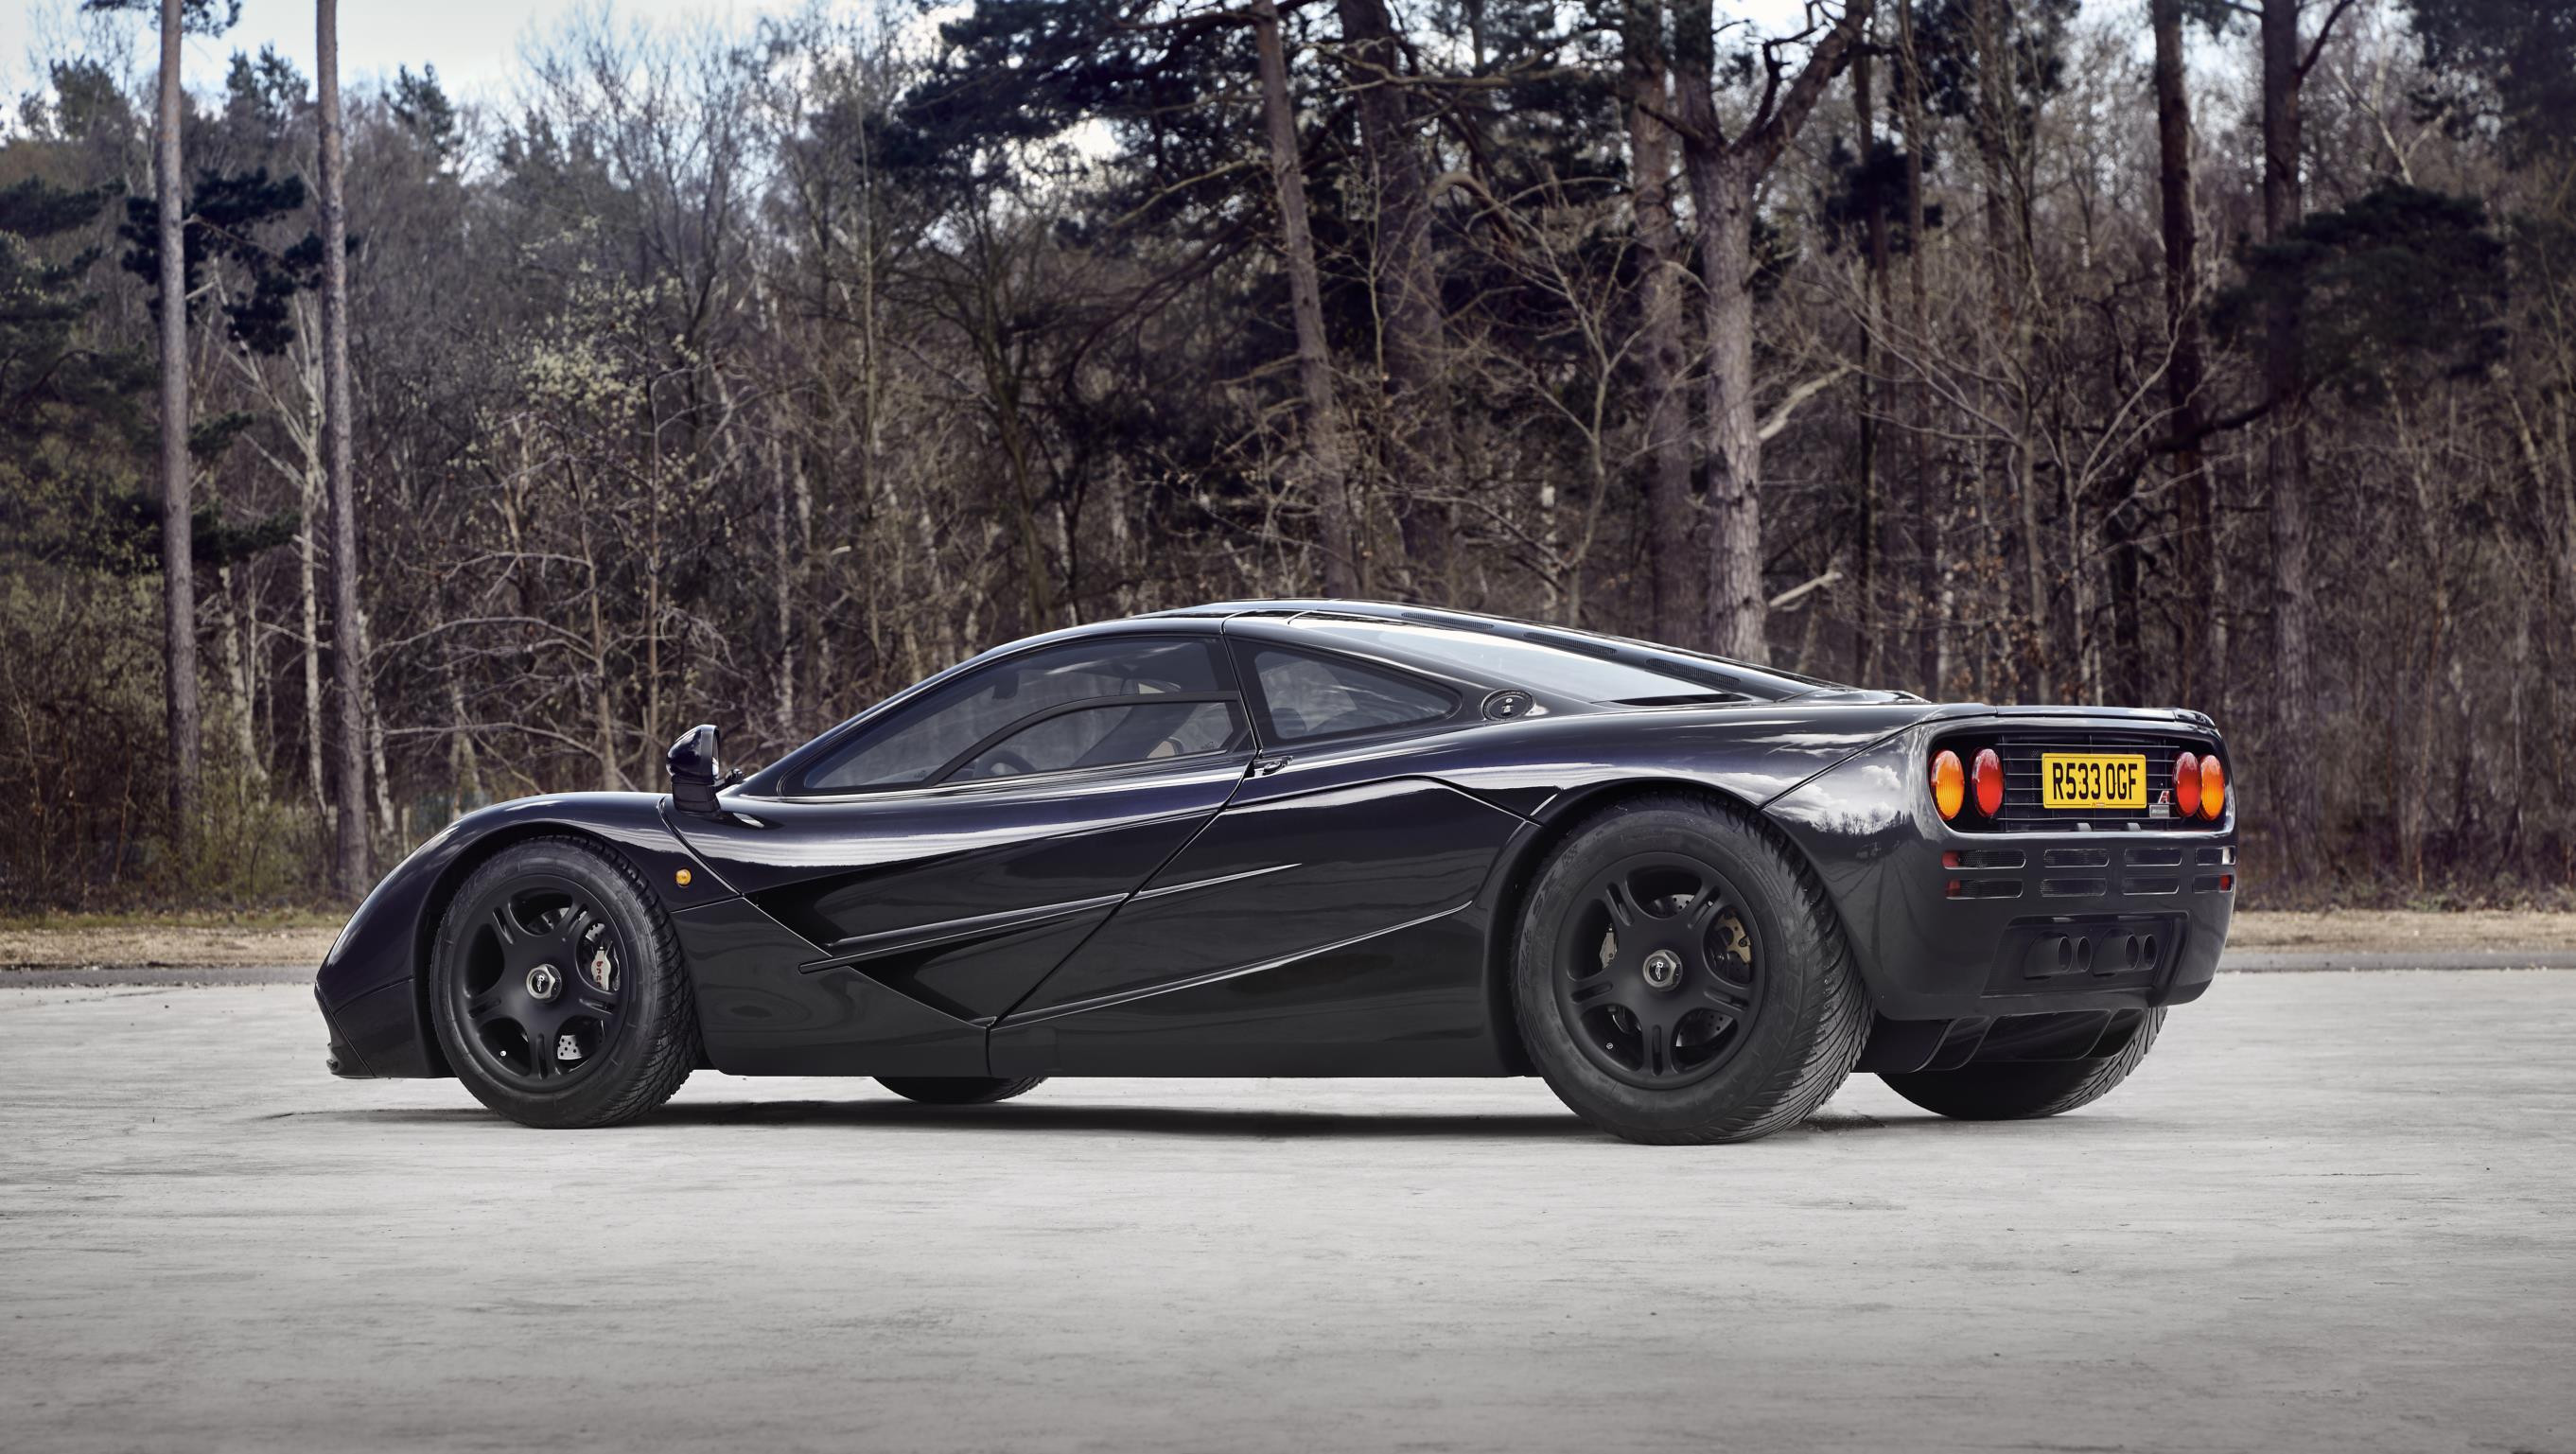 Black McLaren F1-57 parked up in some woods